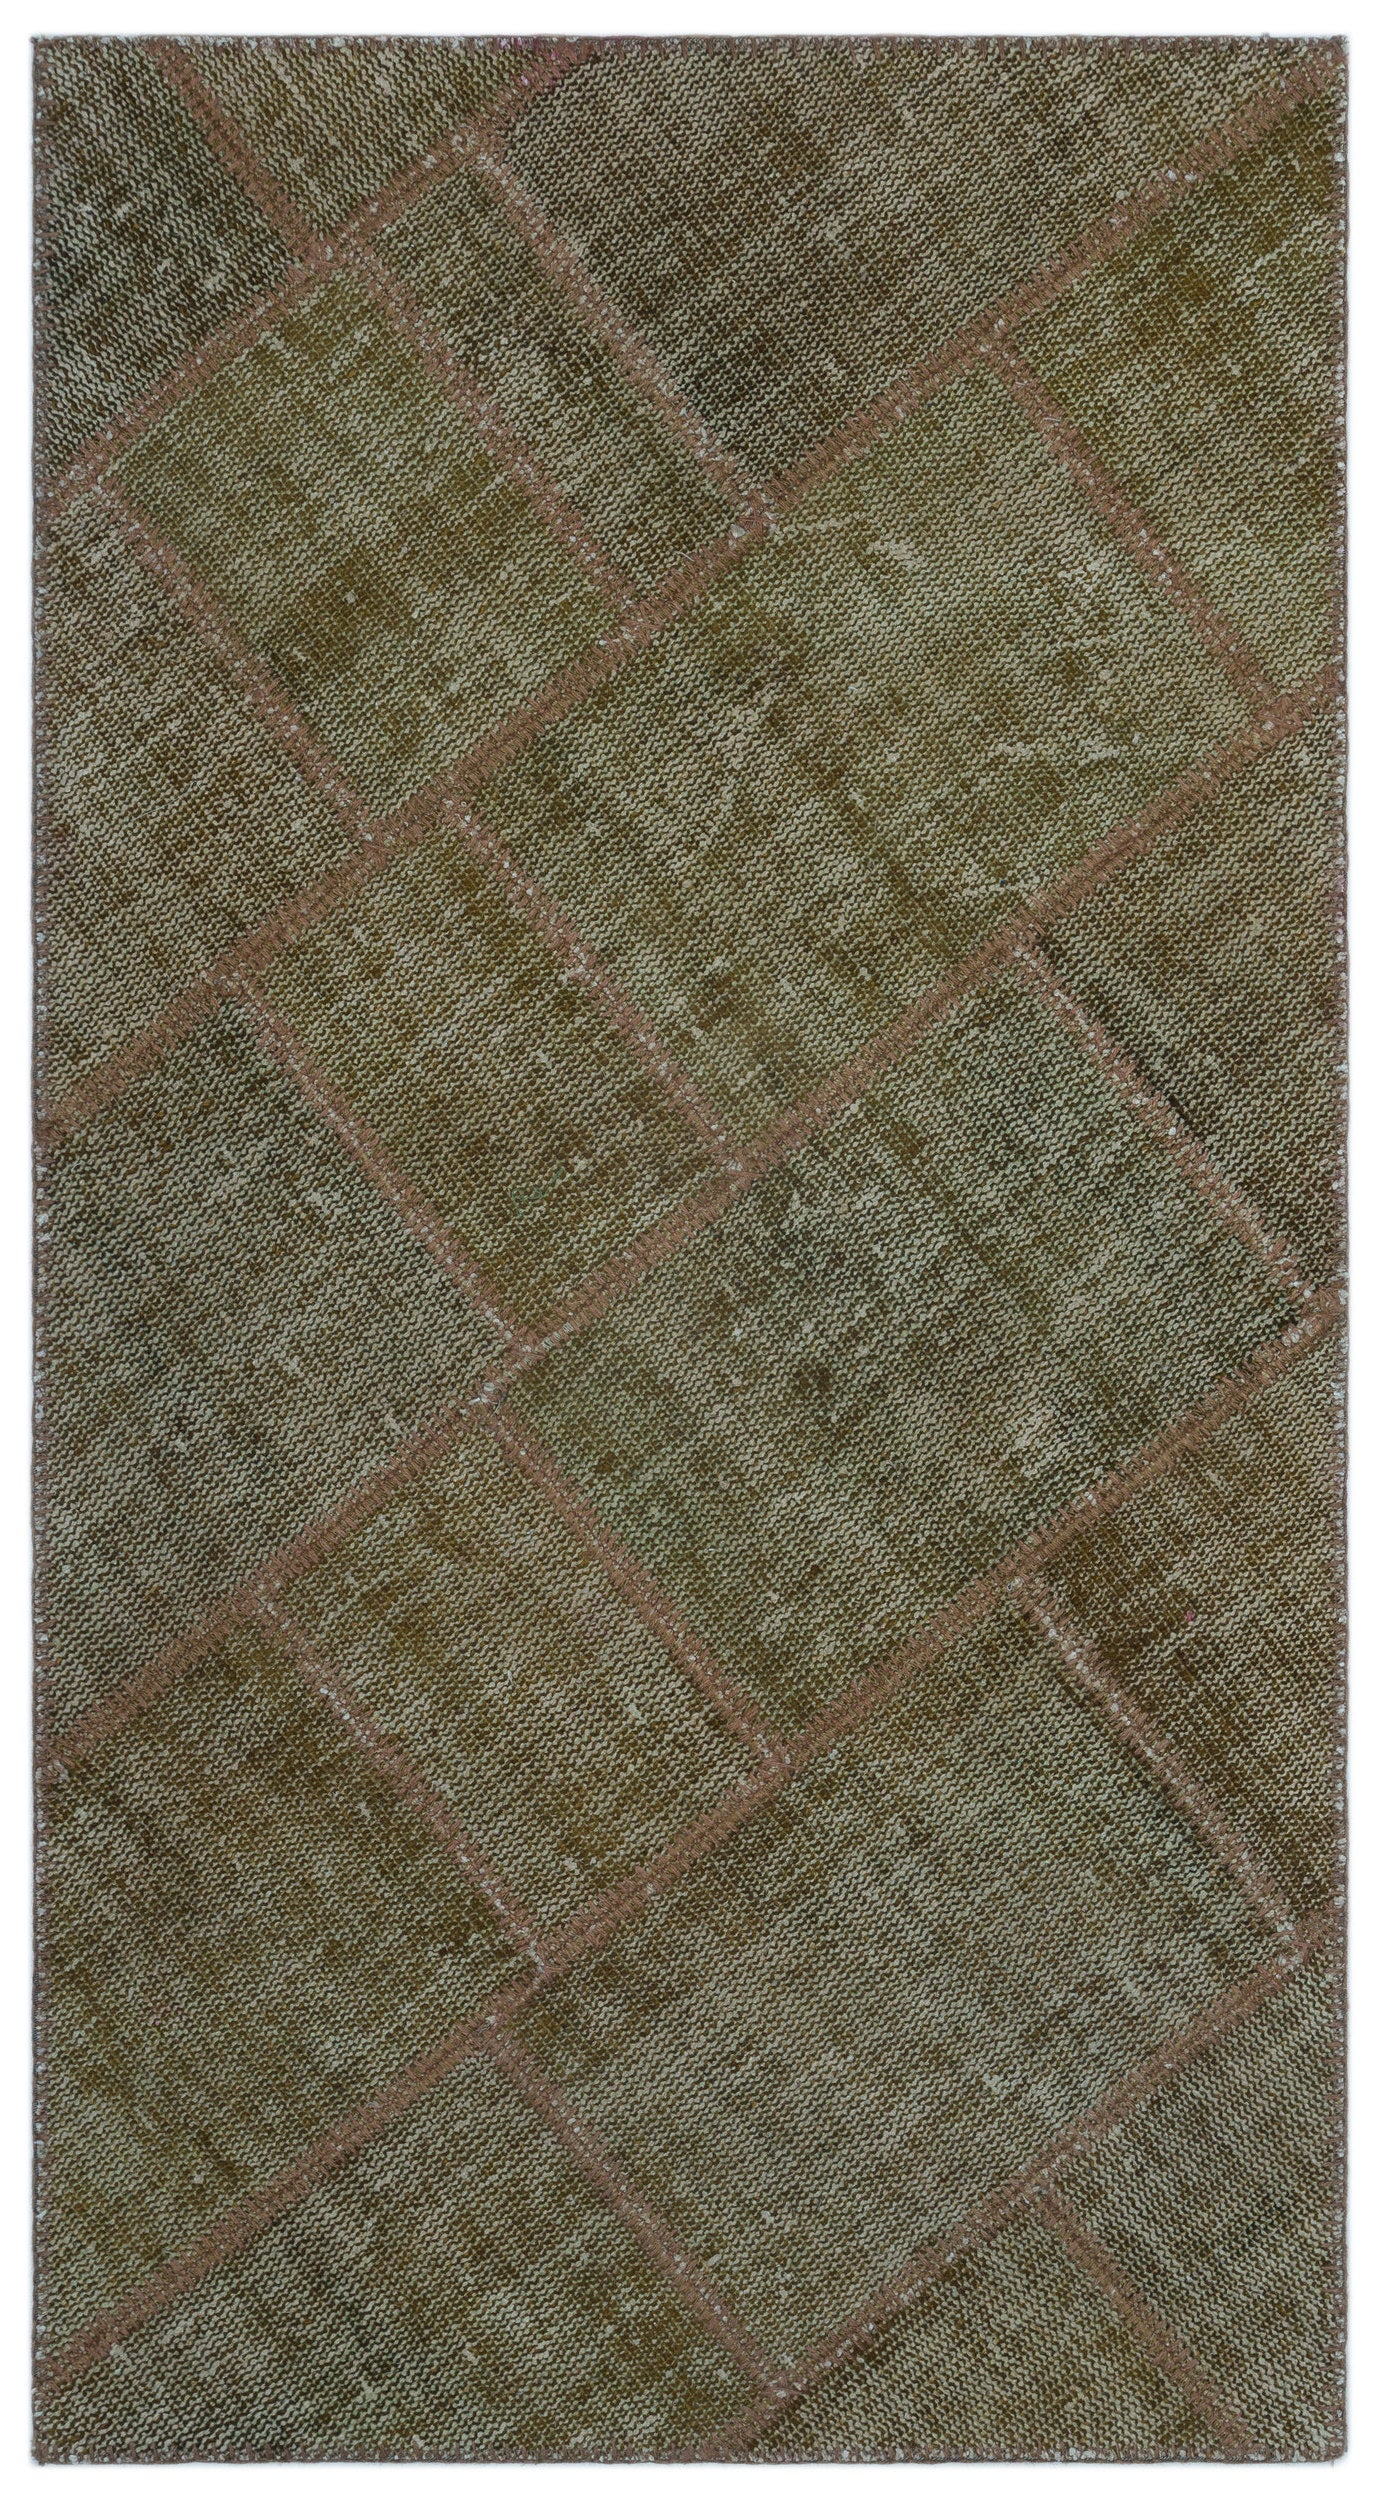 Gray Over Dyed Patchwork Unique Rug 2'7'' x 4'11'' ft 80 x 150 cm